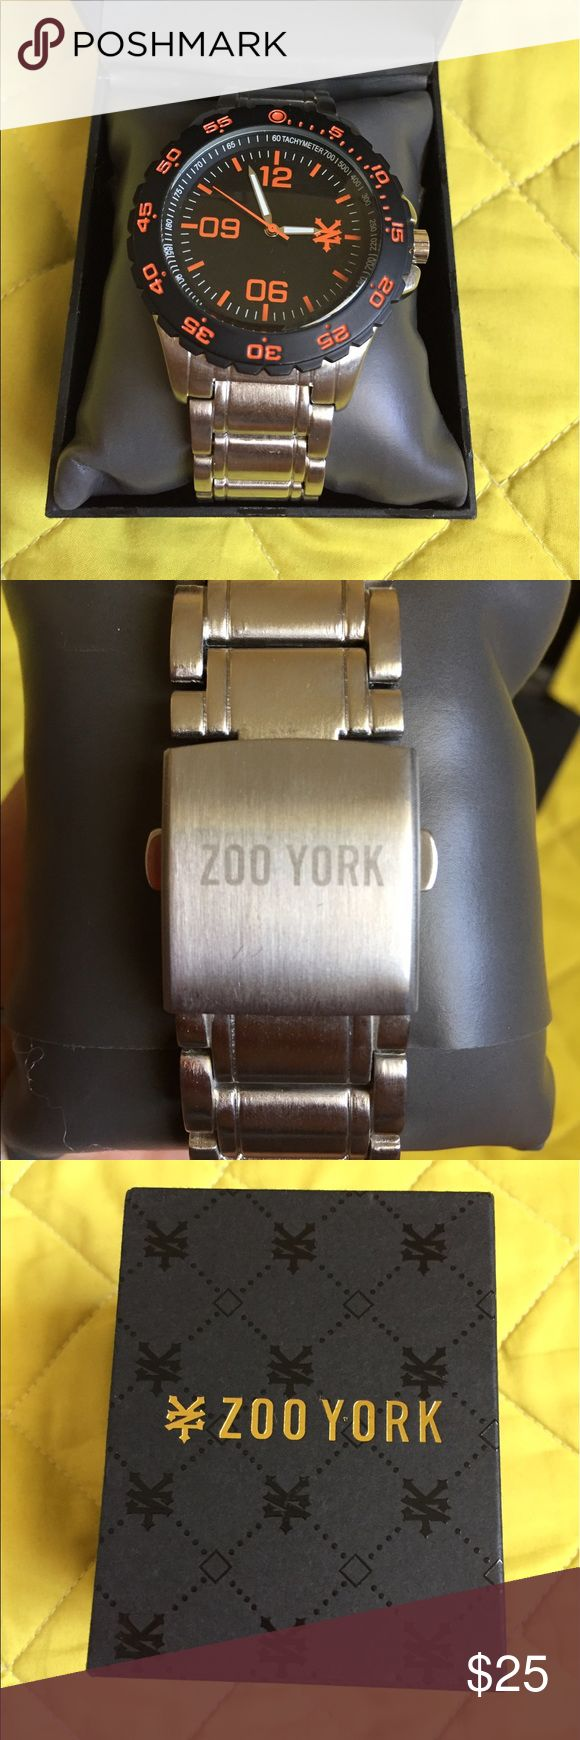 Zoo York watch Brand-new  in original box orange and black. Great gift idea! Zoo York Accessories Watches